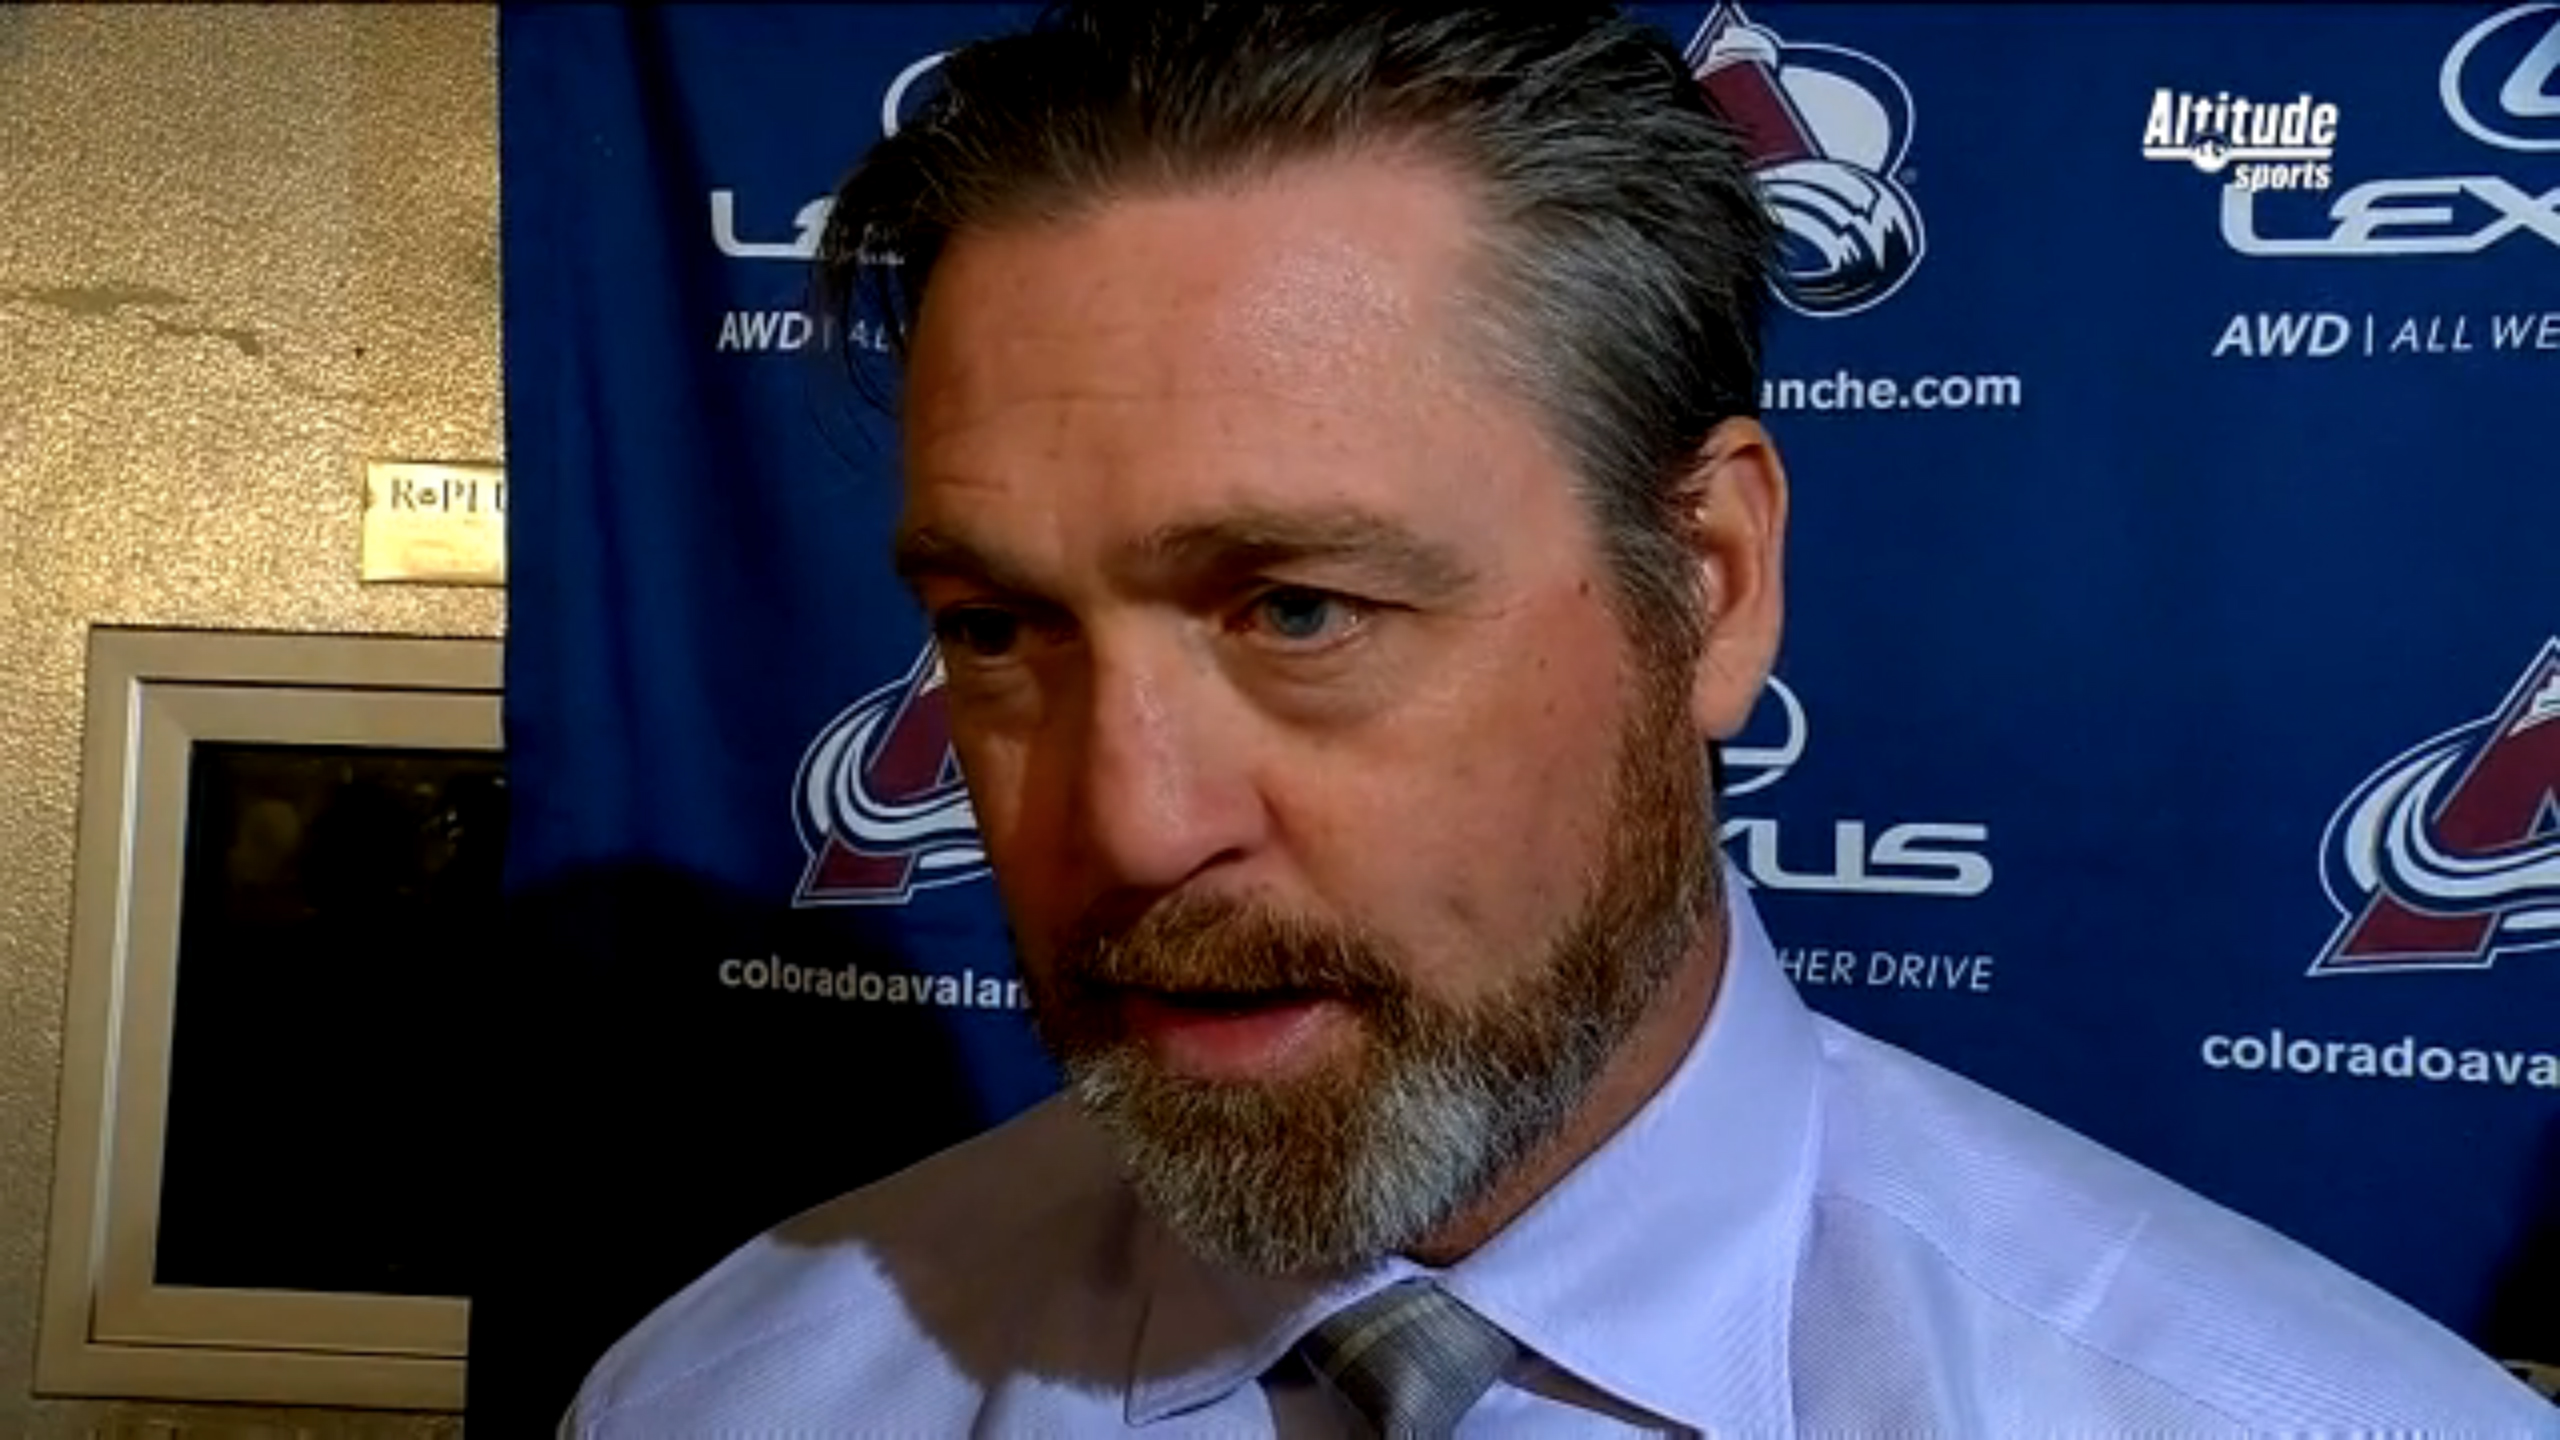 Patrick-Roy-Post-Game-040716.jpg